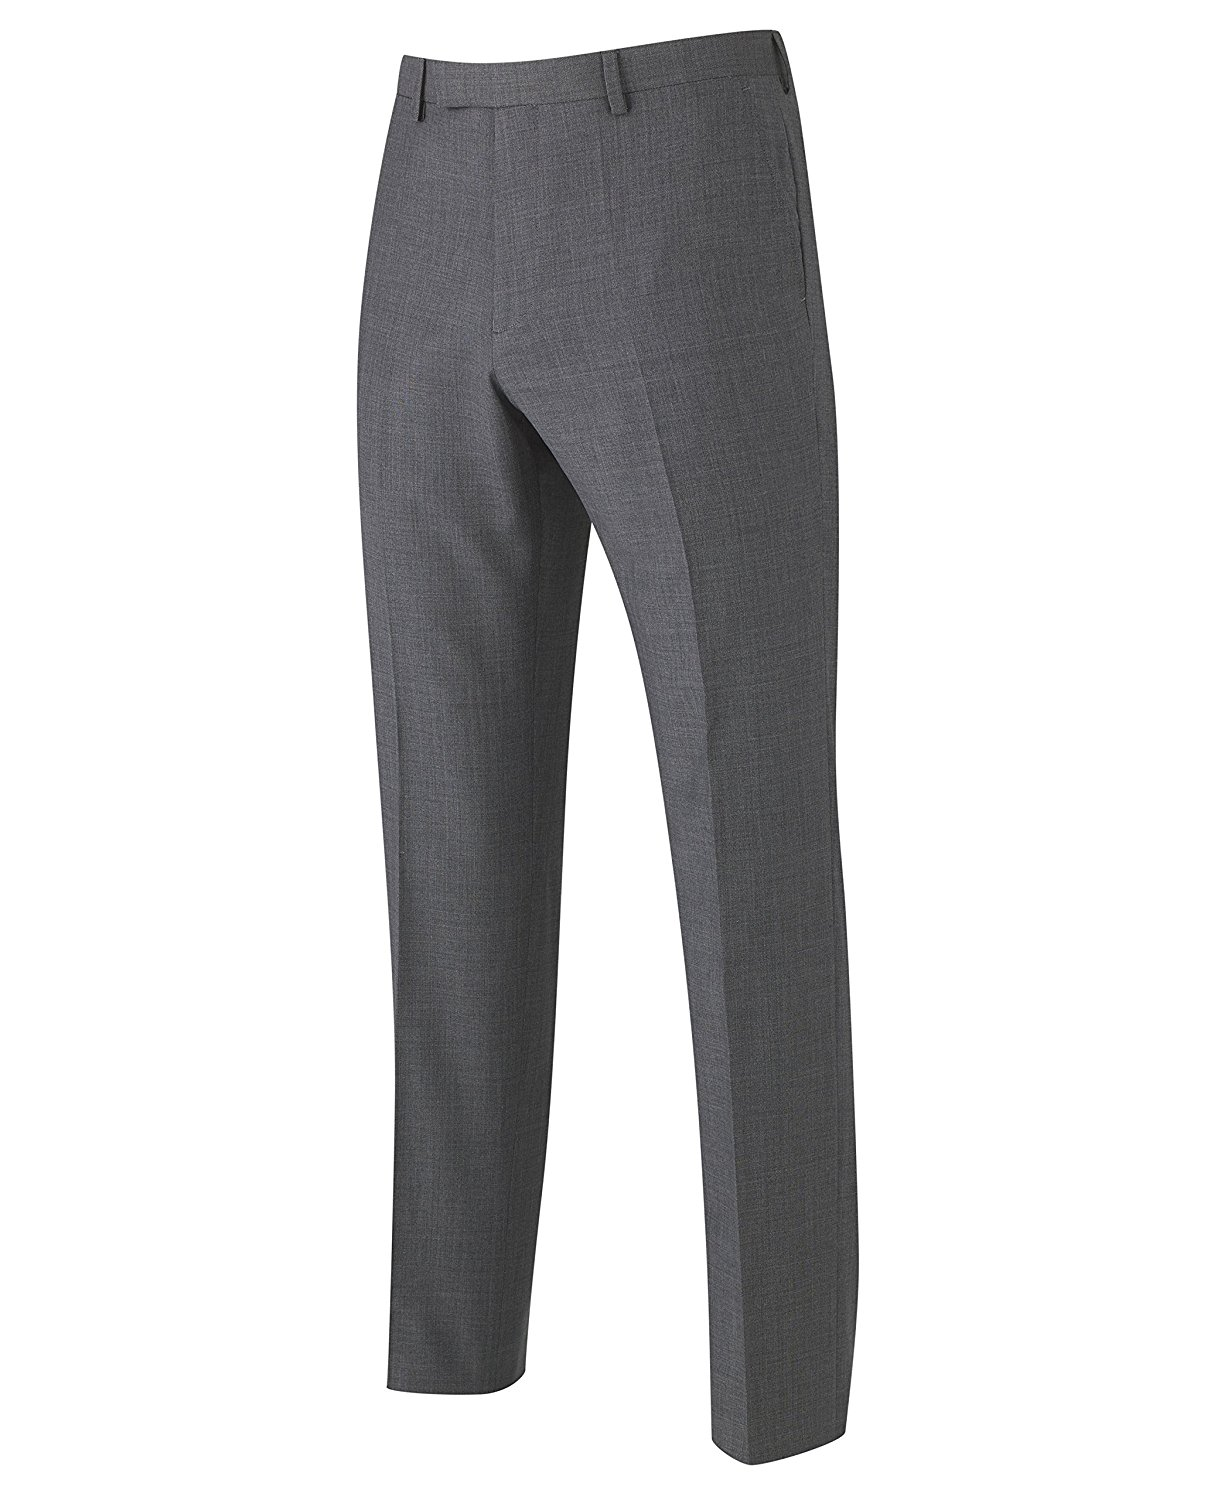 WSPLYSPJY Mens Stripe Tailored-Fit Plain-Front Suit-Separate Pant